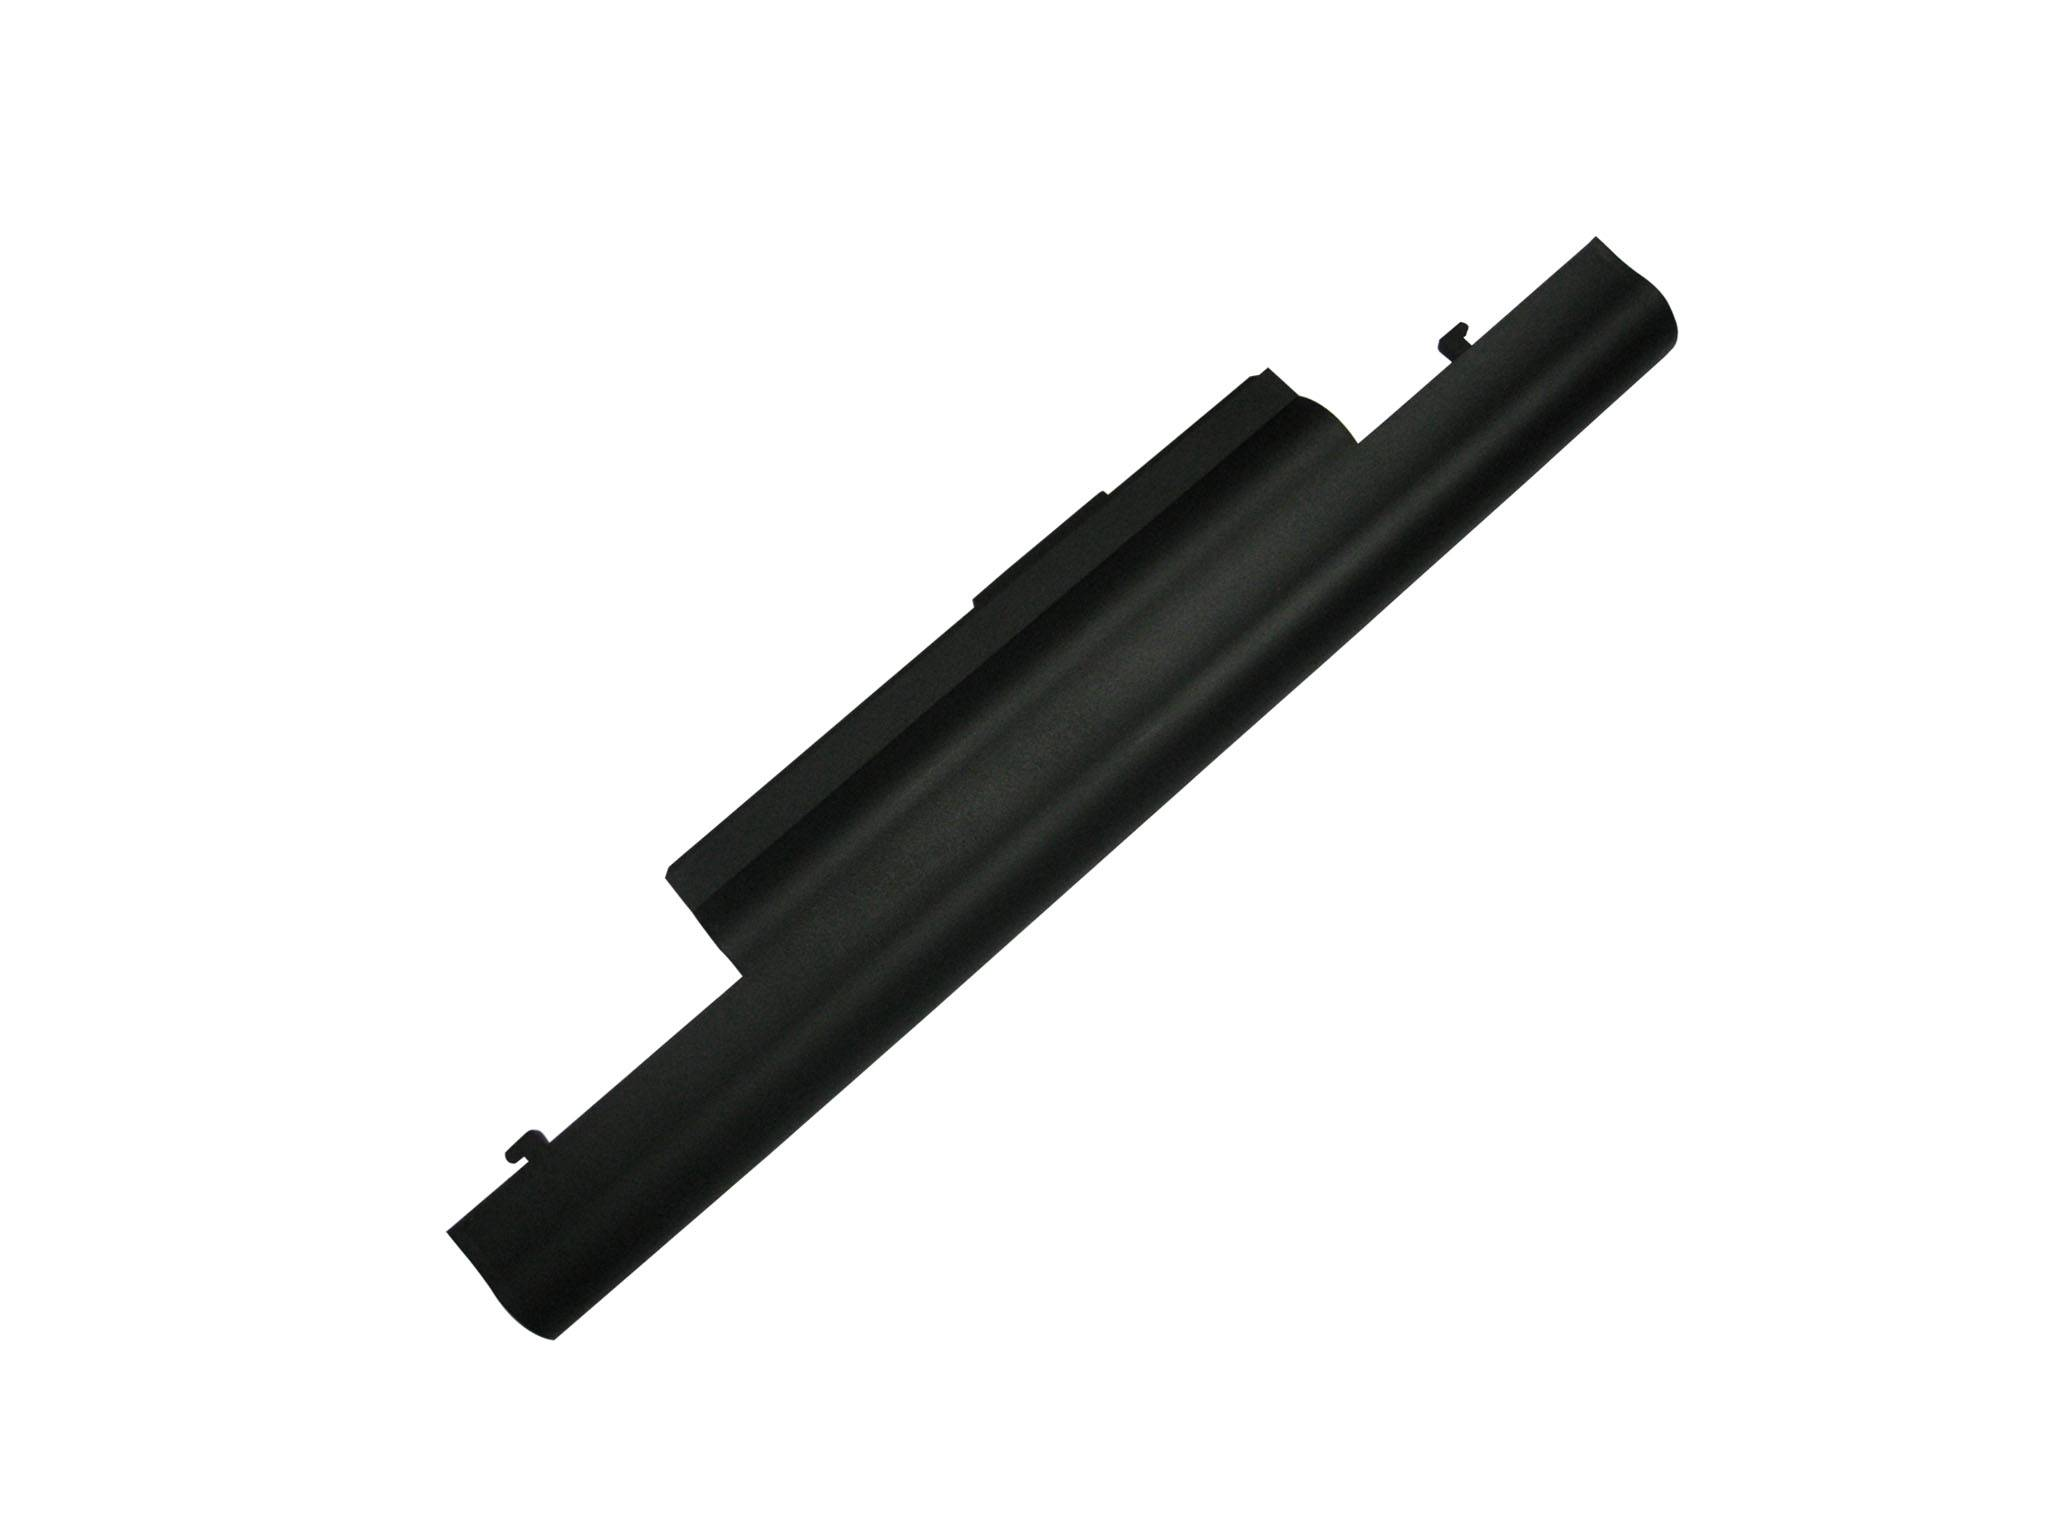 Replacement battery for Acer 3820T